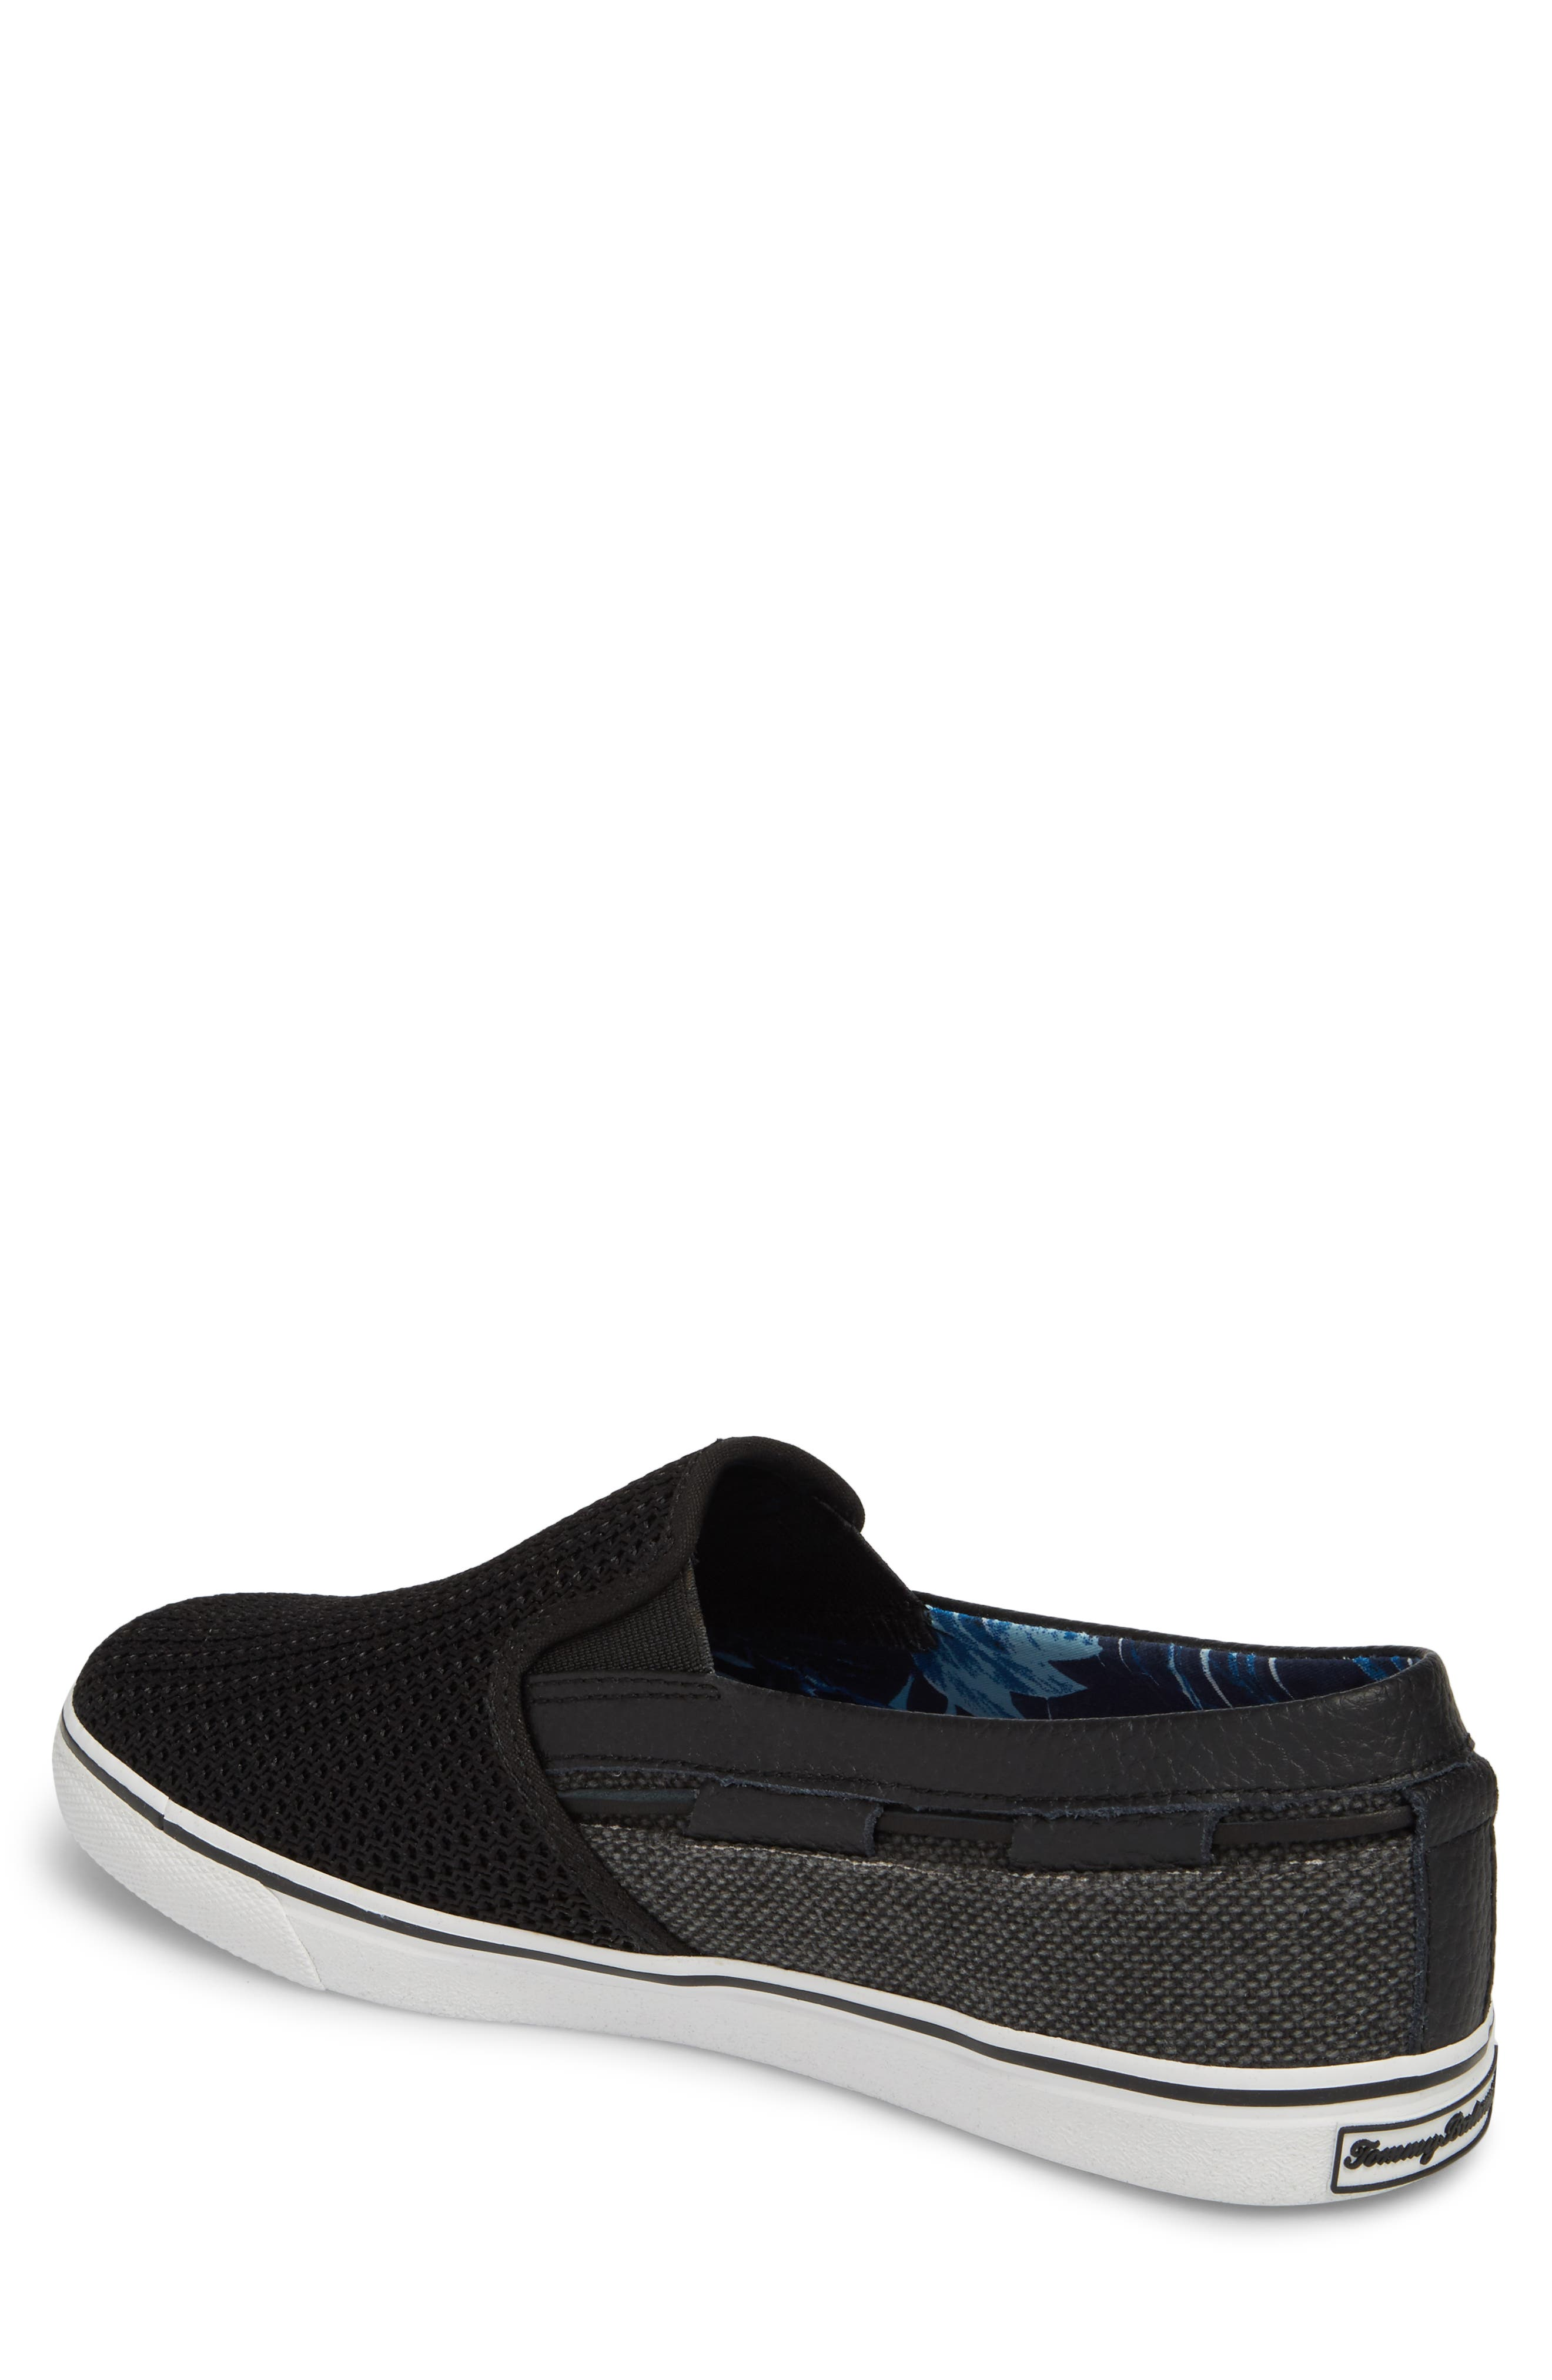 Exodus Mesh Slip-On Sneaker,                             Alternate thumbnail 2, color,                             BLACK MESH/ TEXTILE